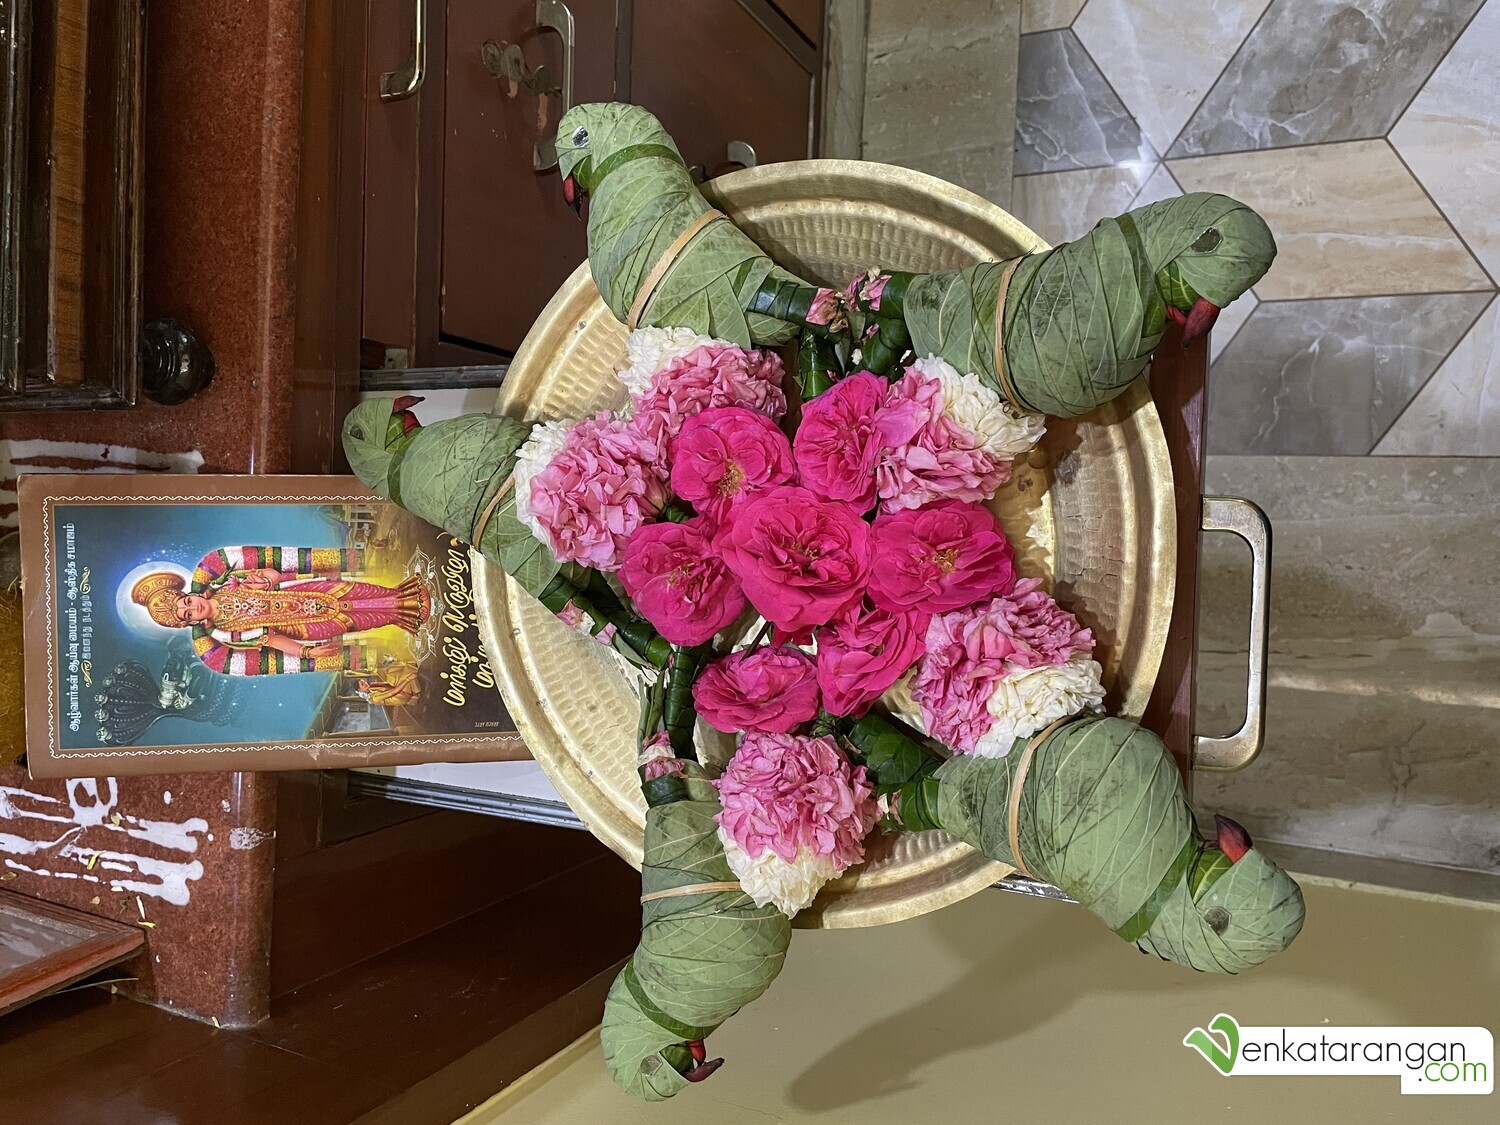 Two pairs of lovely Srivilliputhur parrot toys made out of leaves